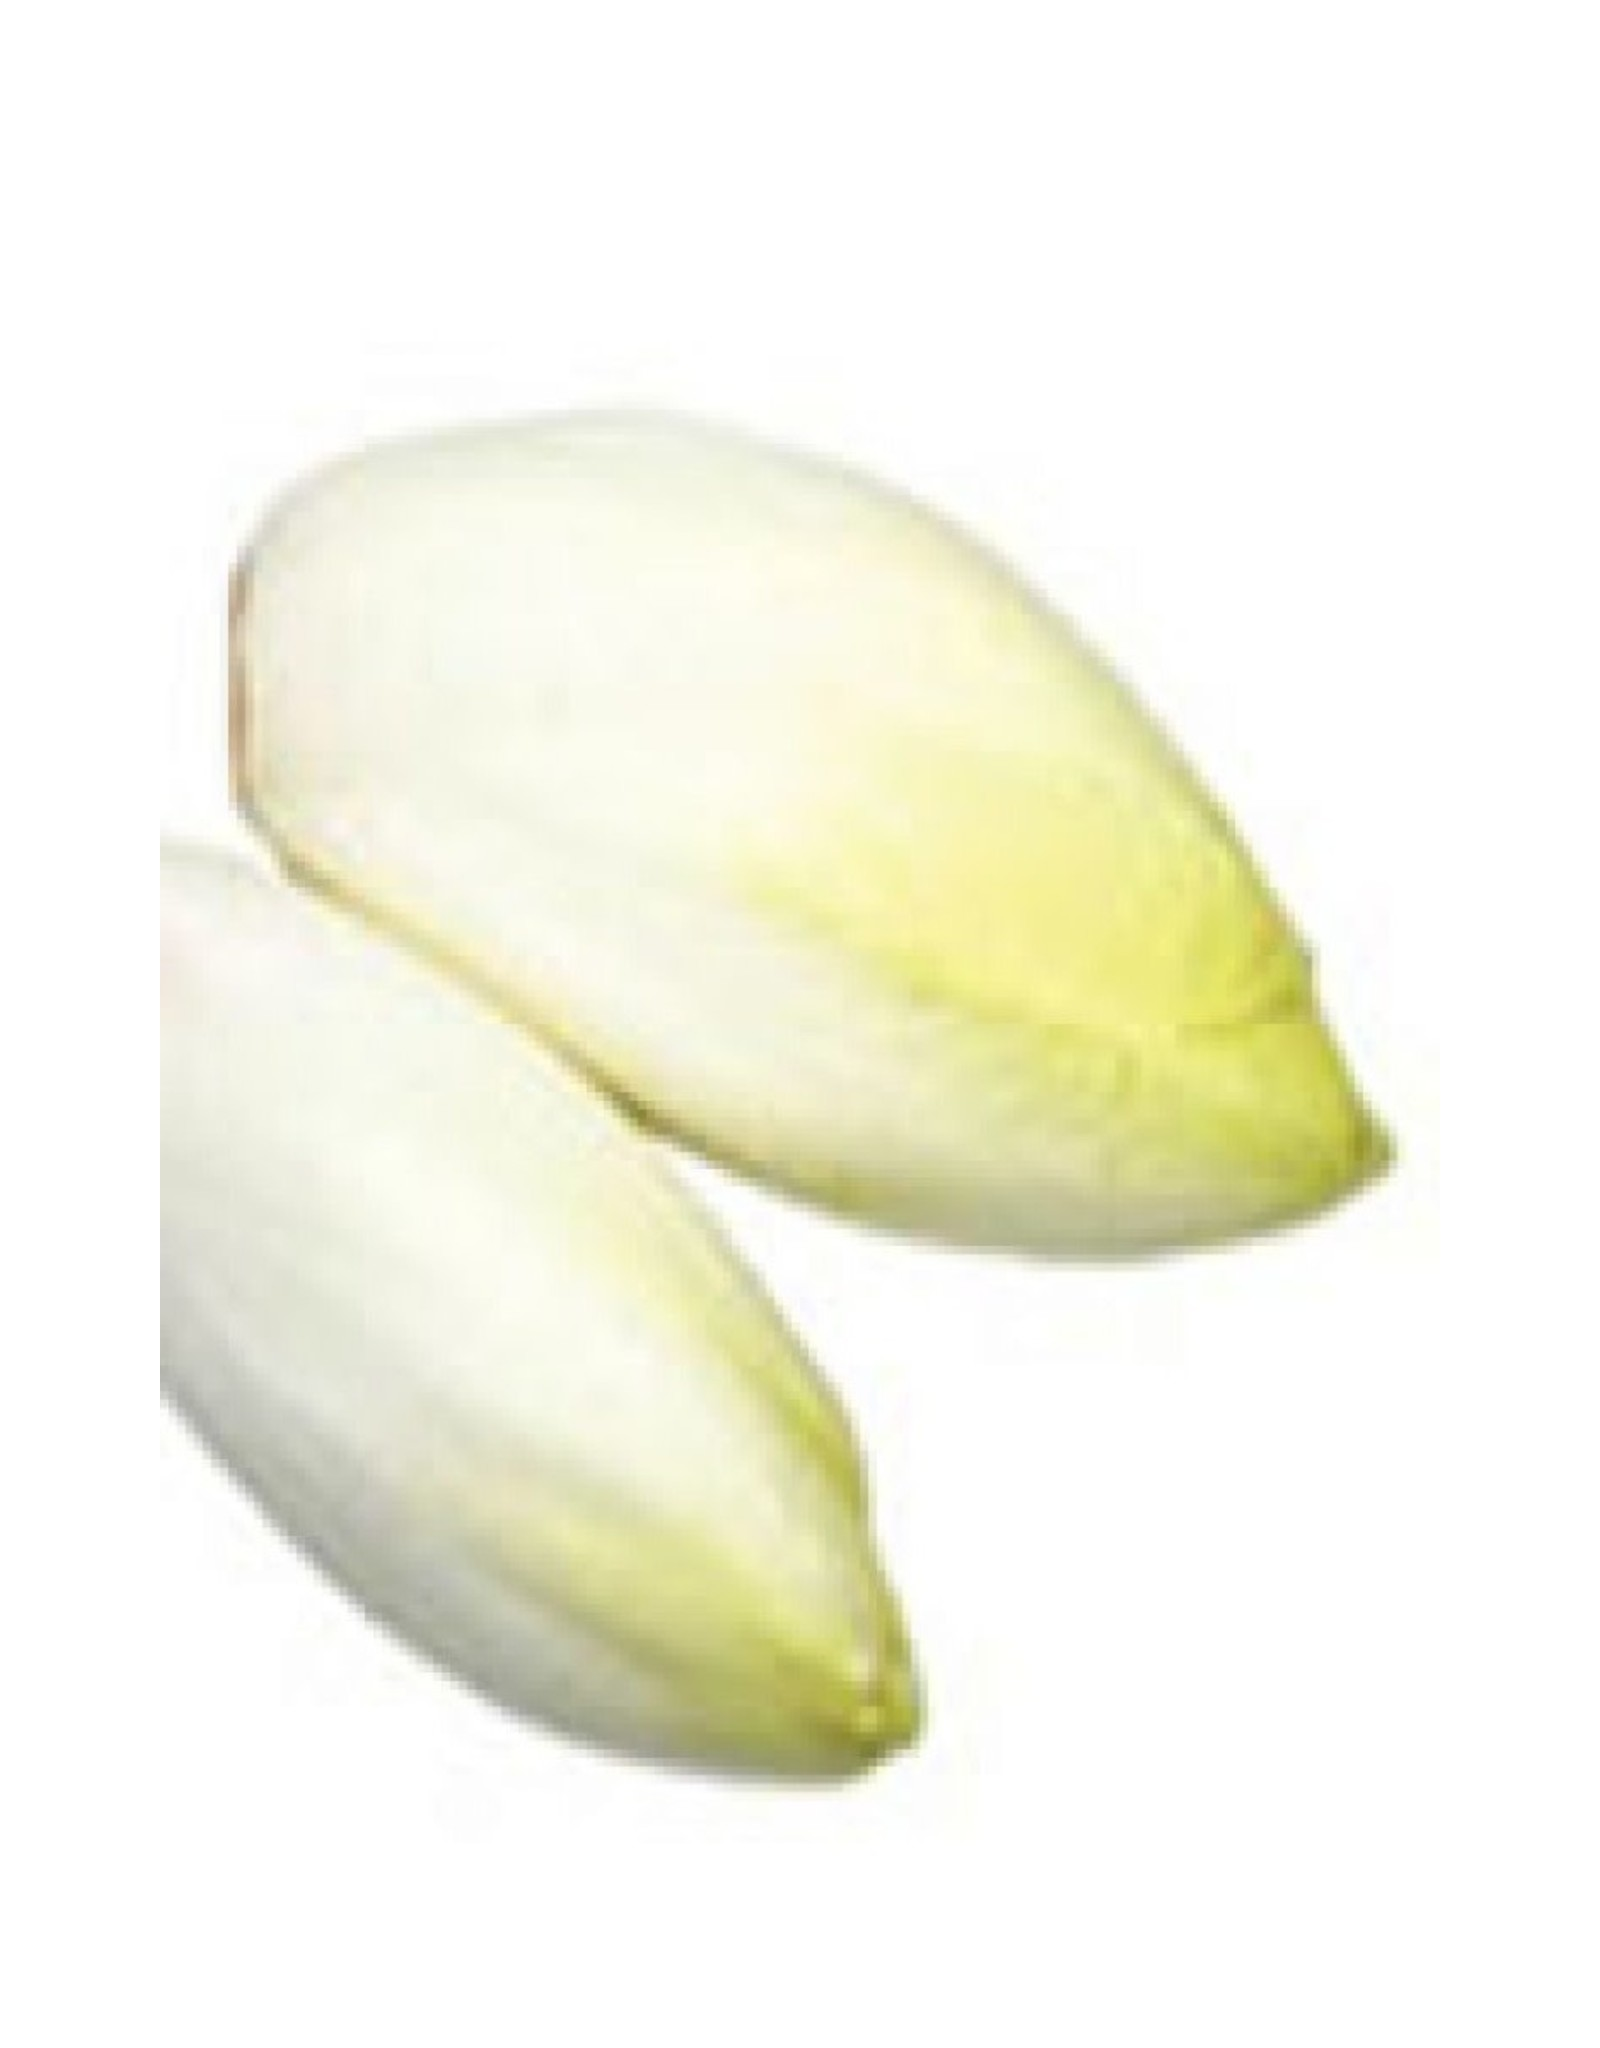 French Endive or Witloof Chicory Seeds 1495